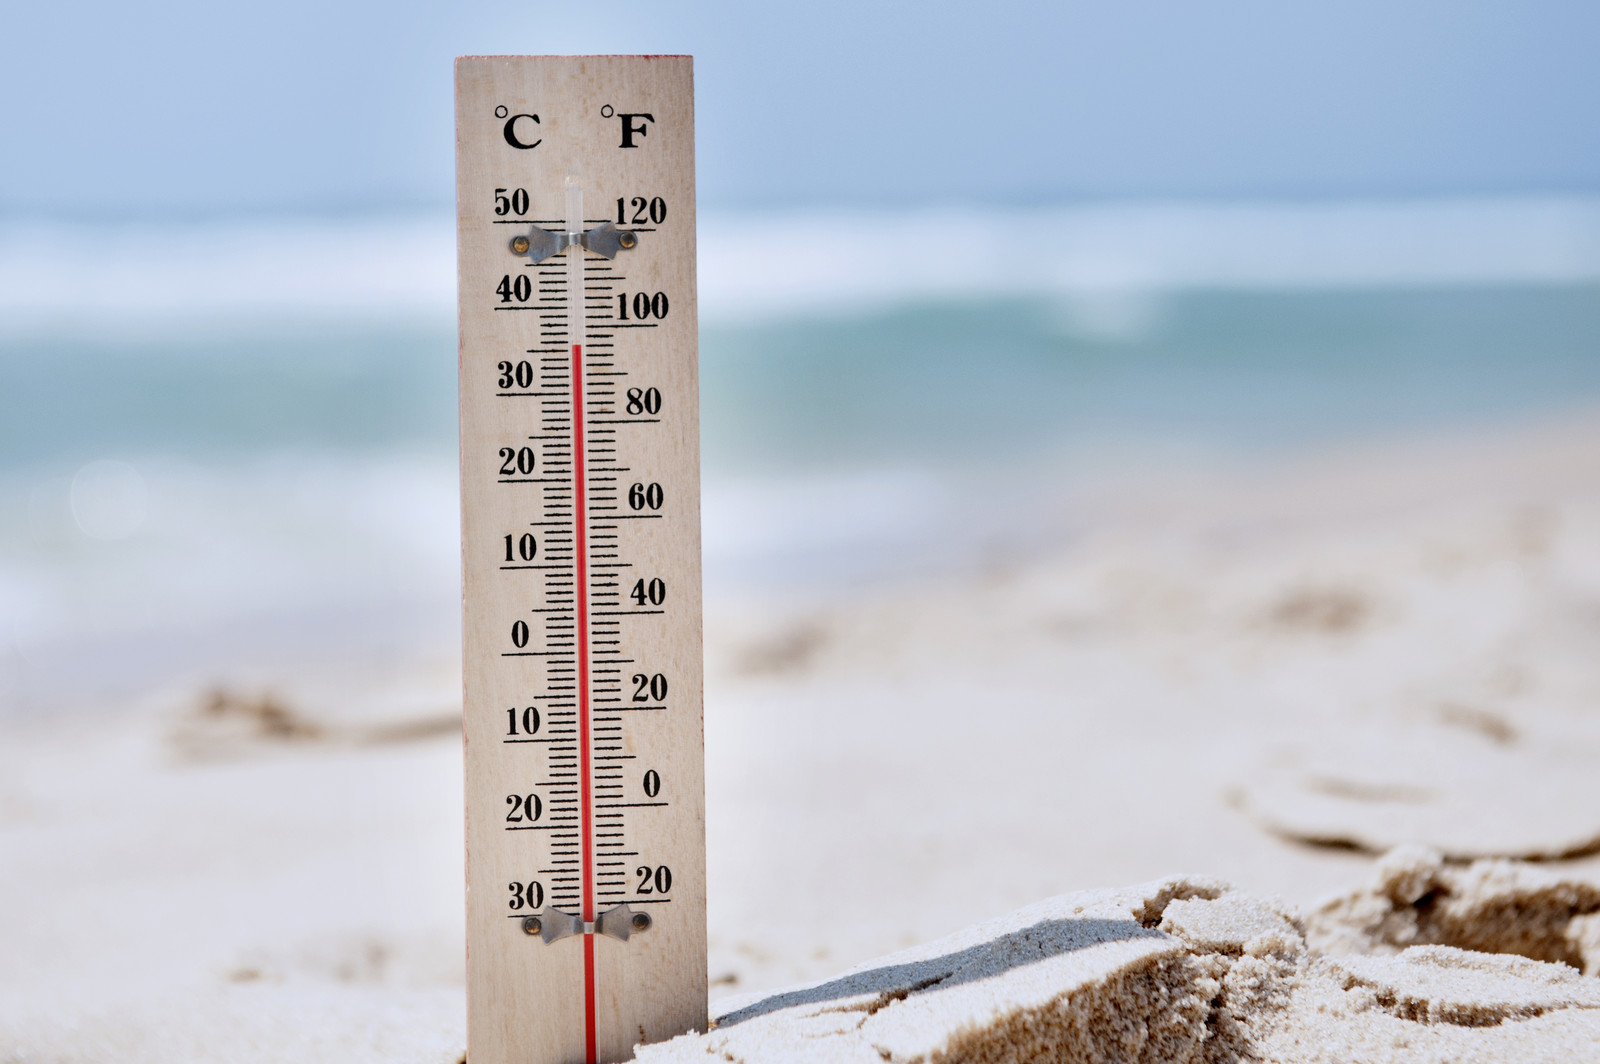 Too much heat at the beach promotes sunstroke